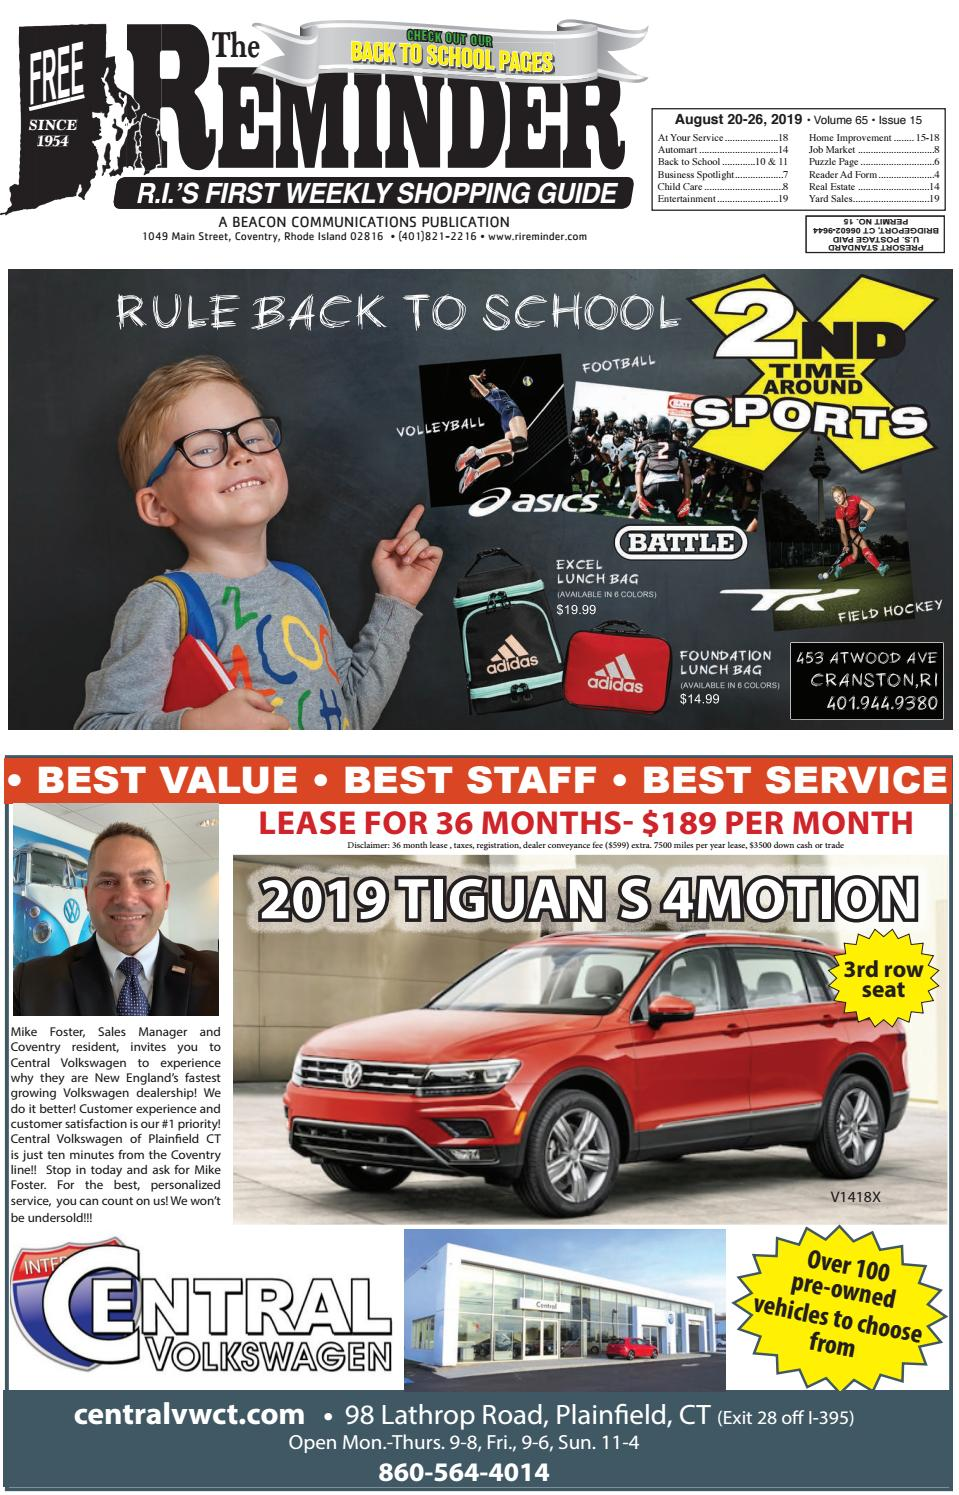 The Reminder August 20 26, 2019 by Beacon Communications issuu